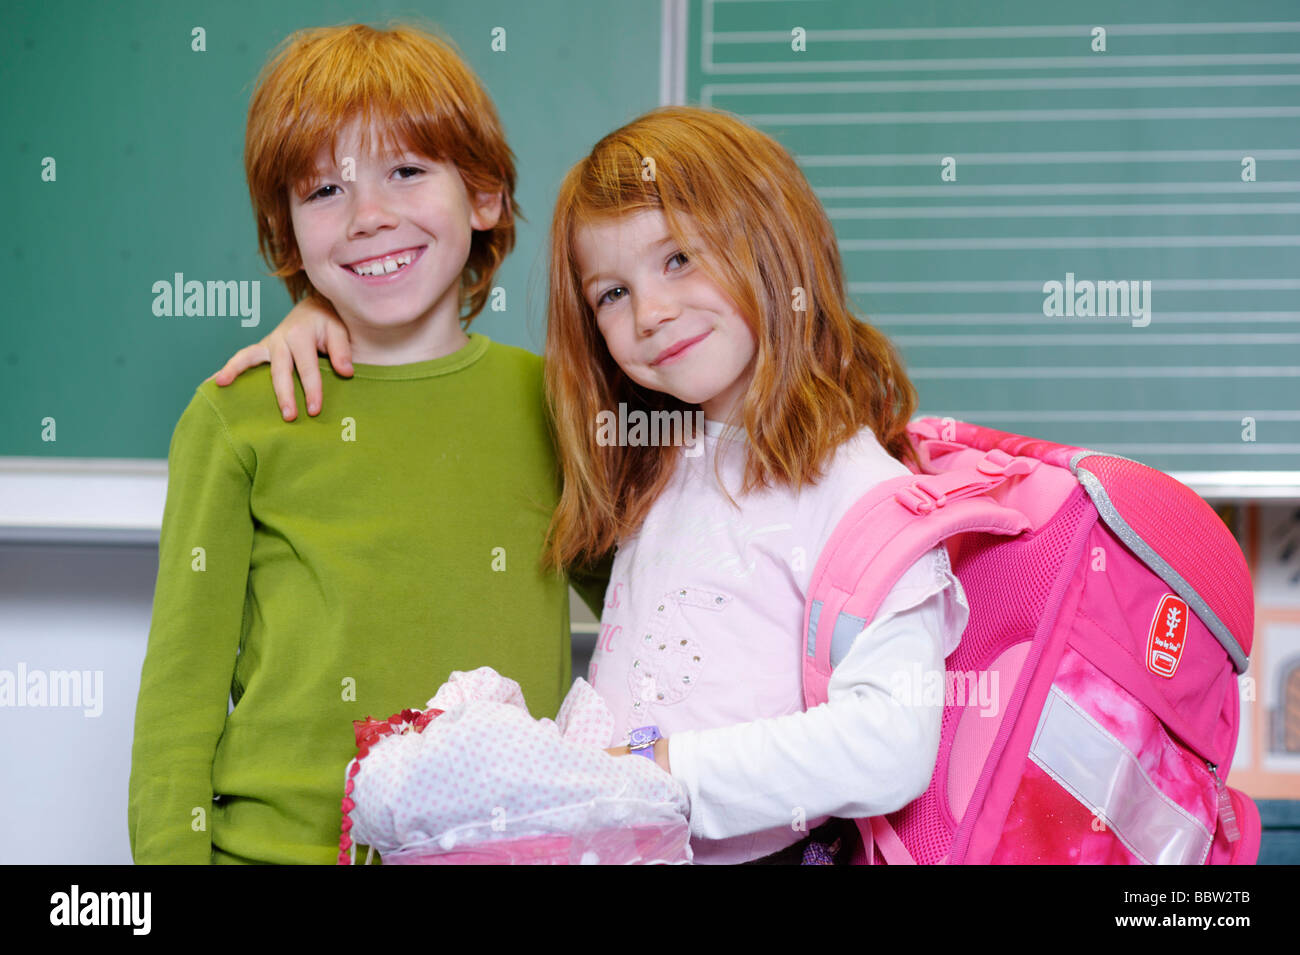 Two children in primary school, friends or siblings in a classroom - Stock Image